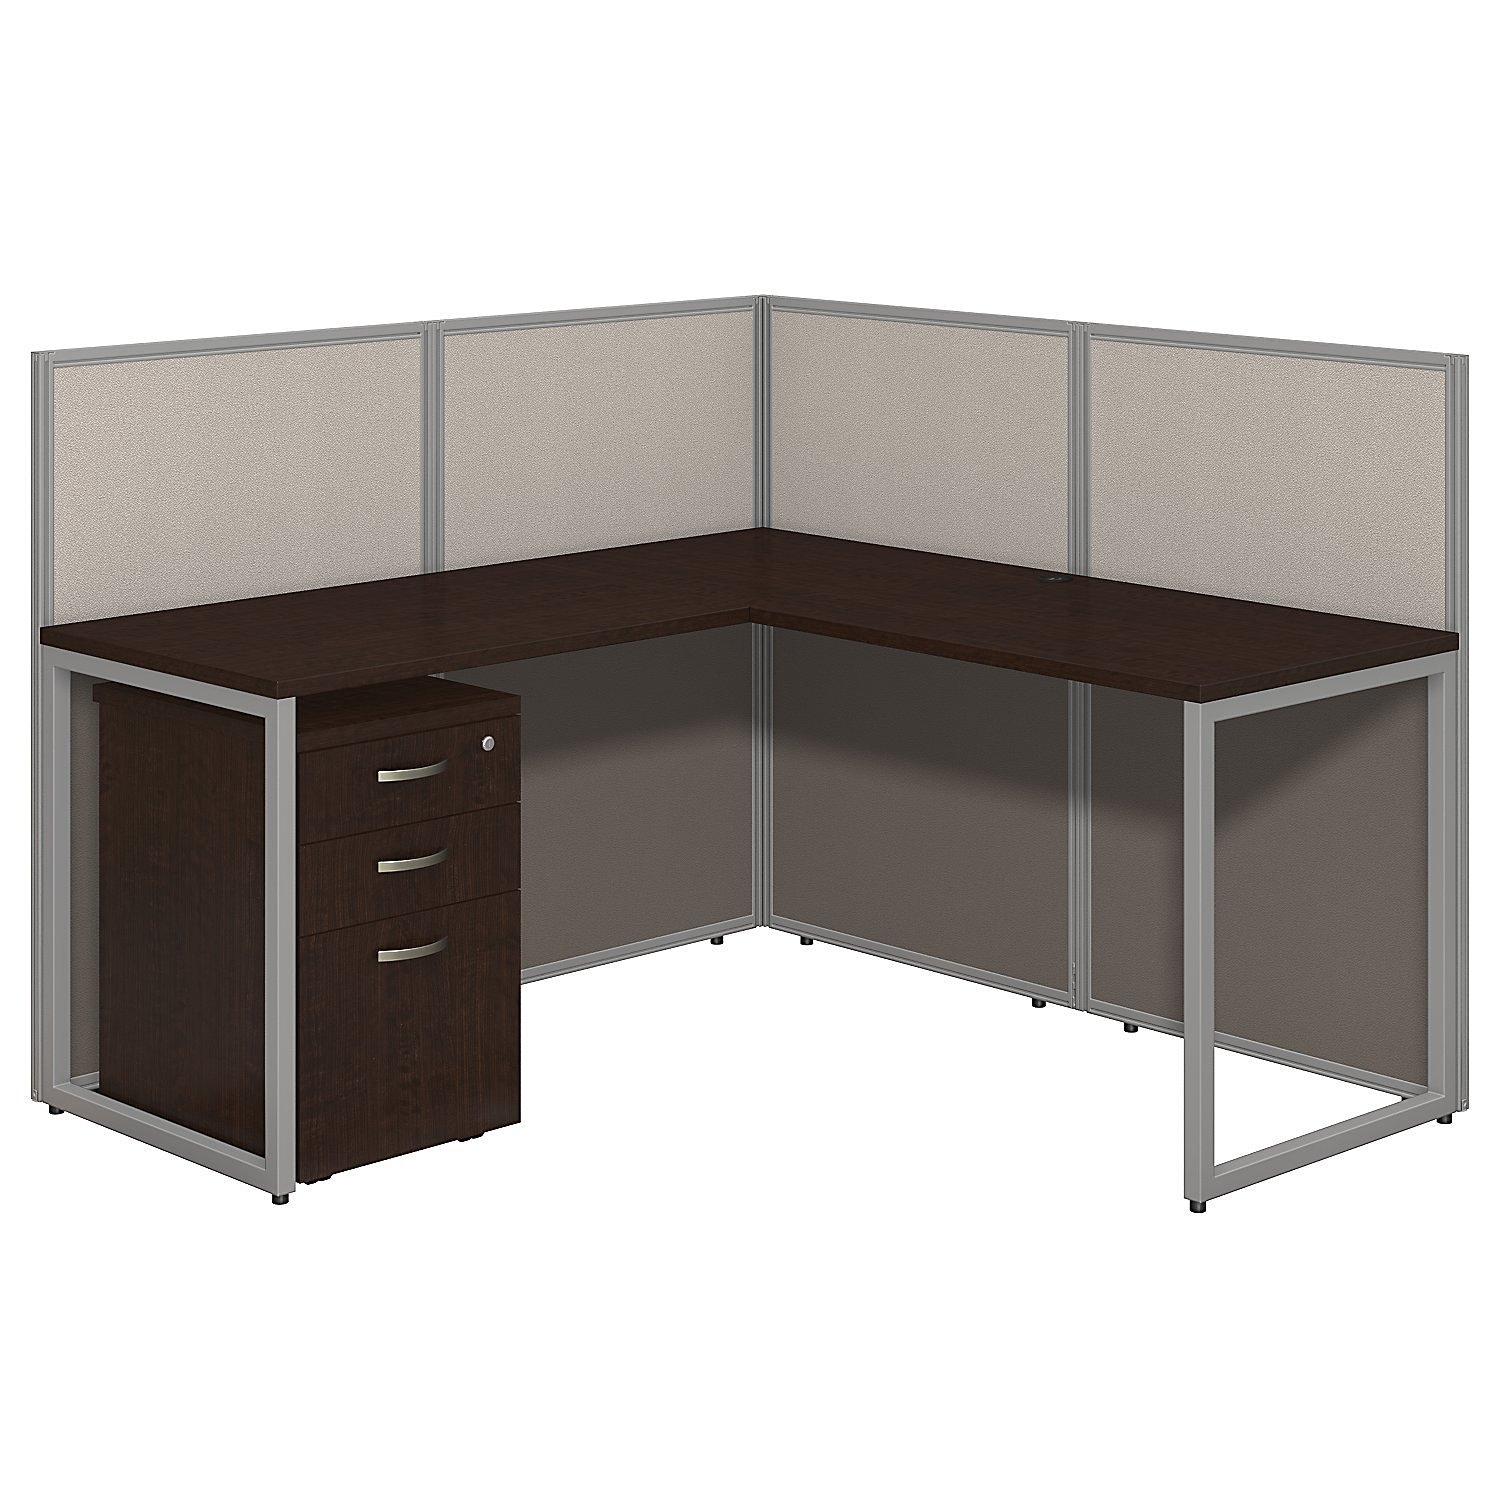 Ez Work Cubicle For 1 L Shape Cubicle Workstation With Storage 60x60